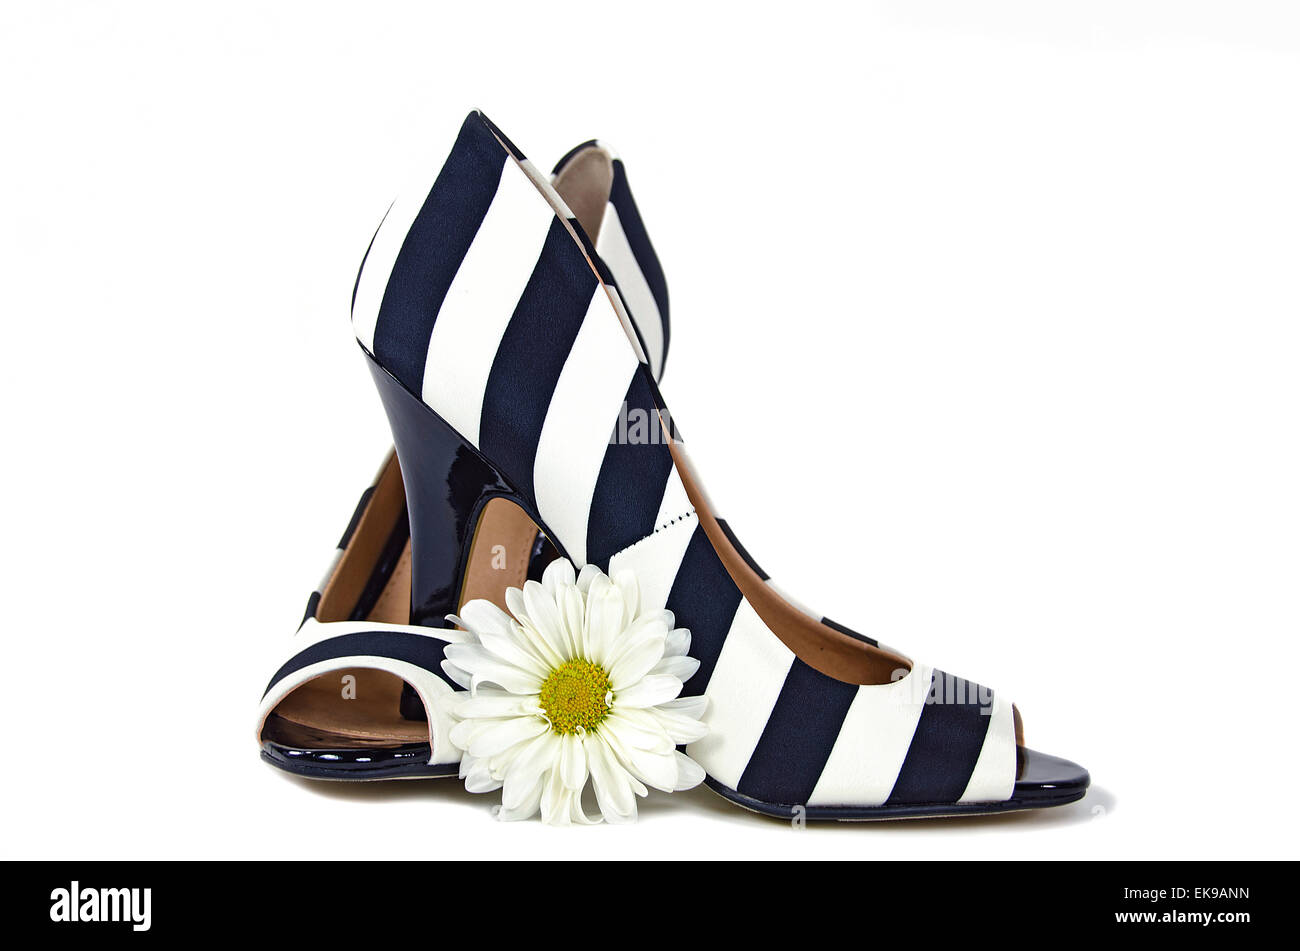 Black and white striped high heels with daisy isolated on white. - Stock Image